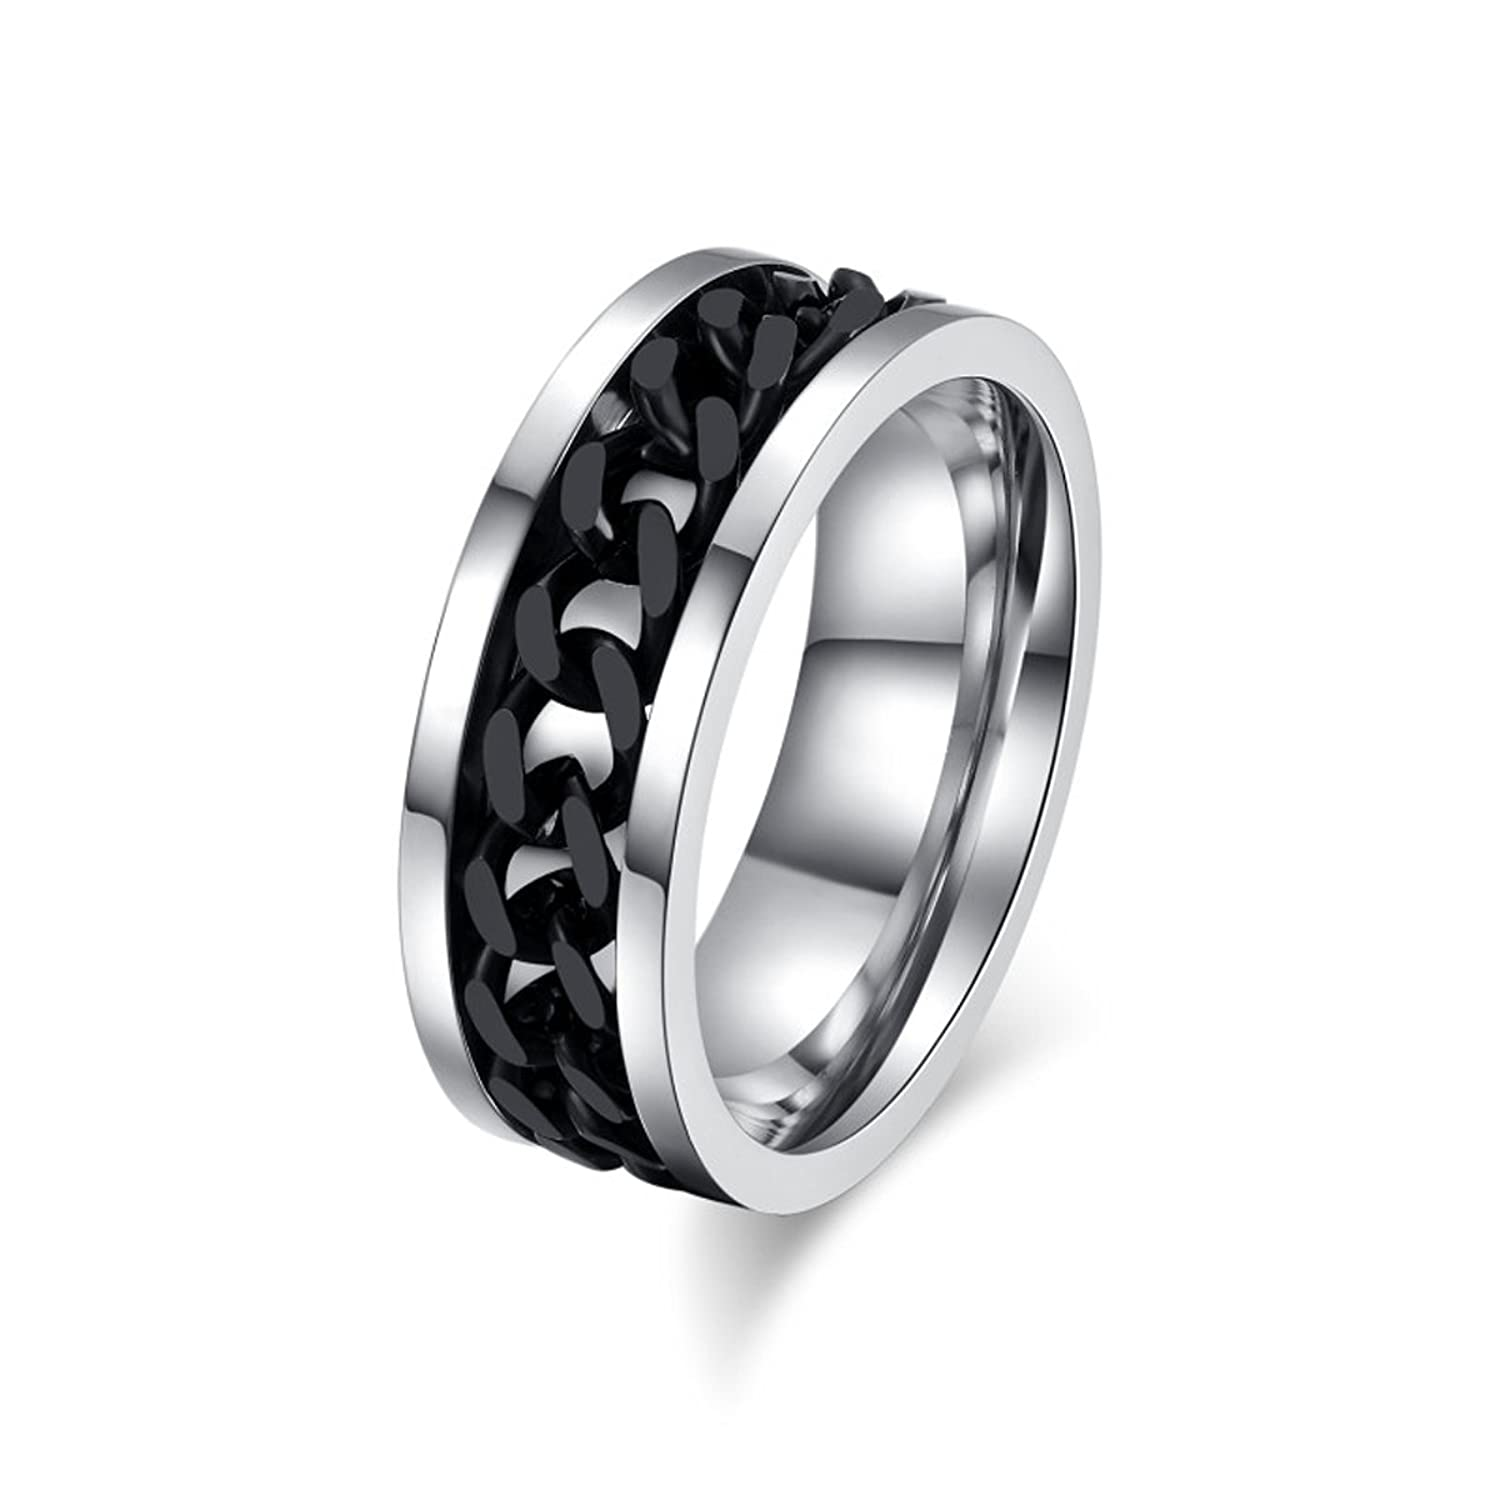 VALYRIA Jewelry Mens Stainless Steel Spinner Ring w/ Curb Chain Ring|Amazon.com